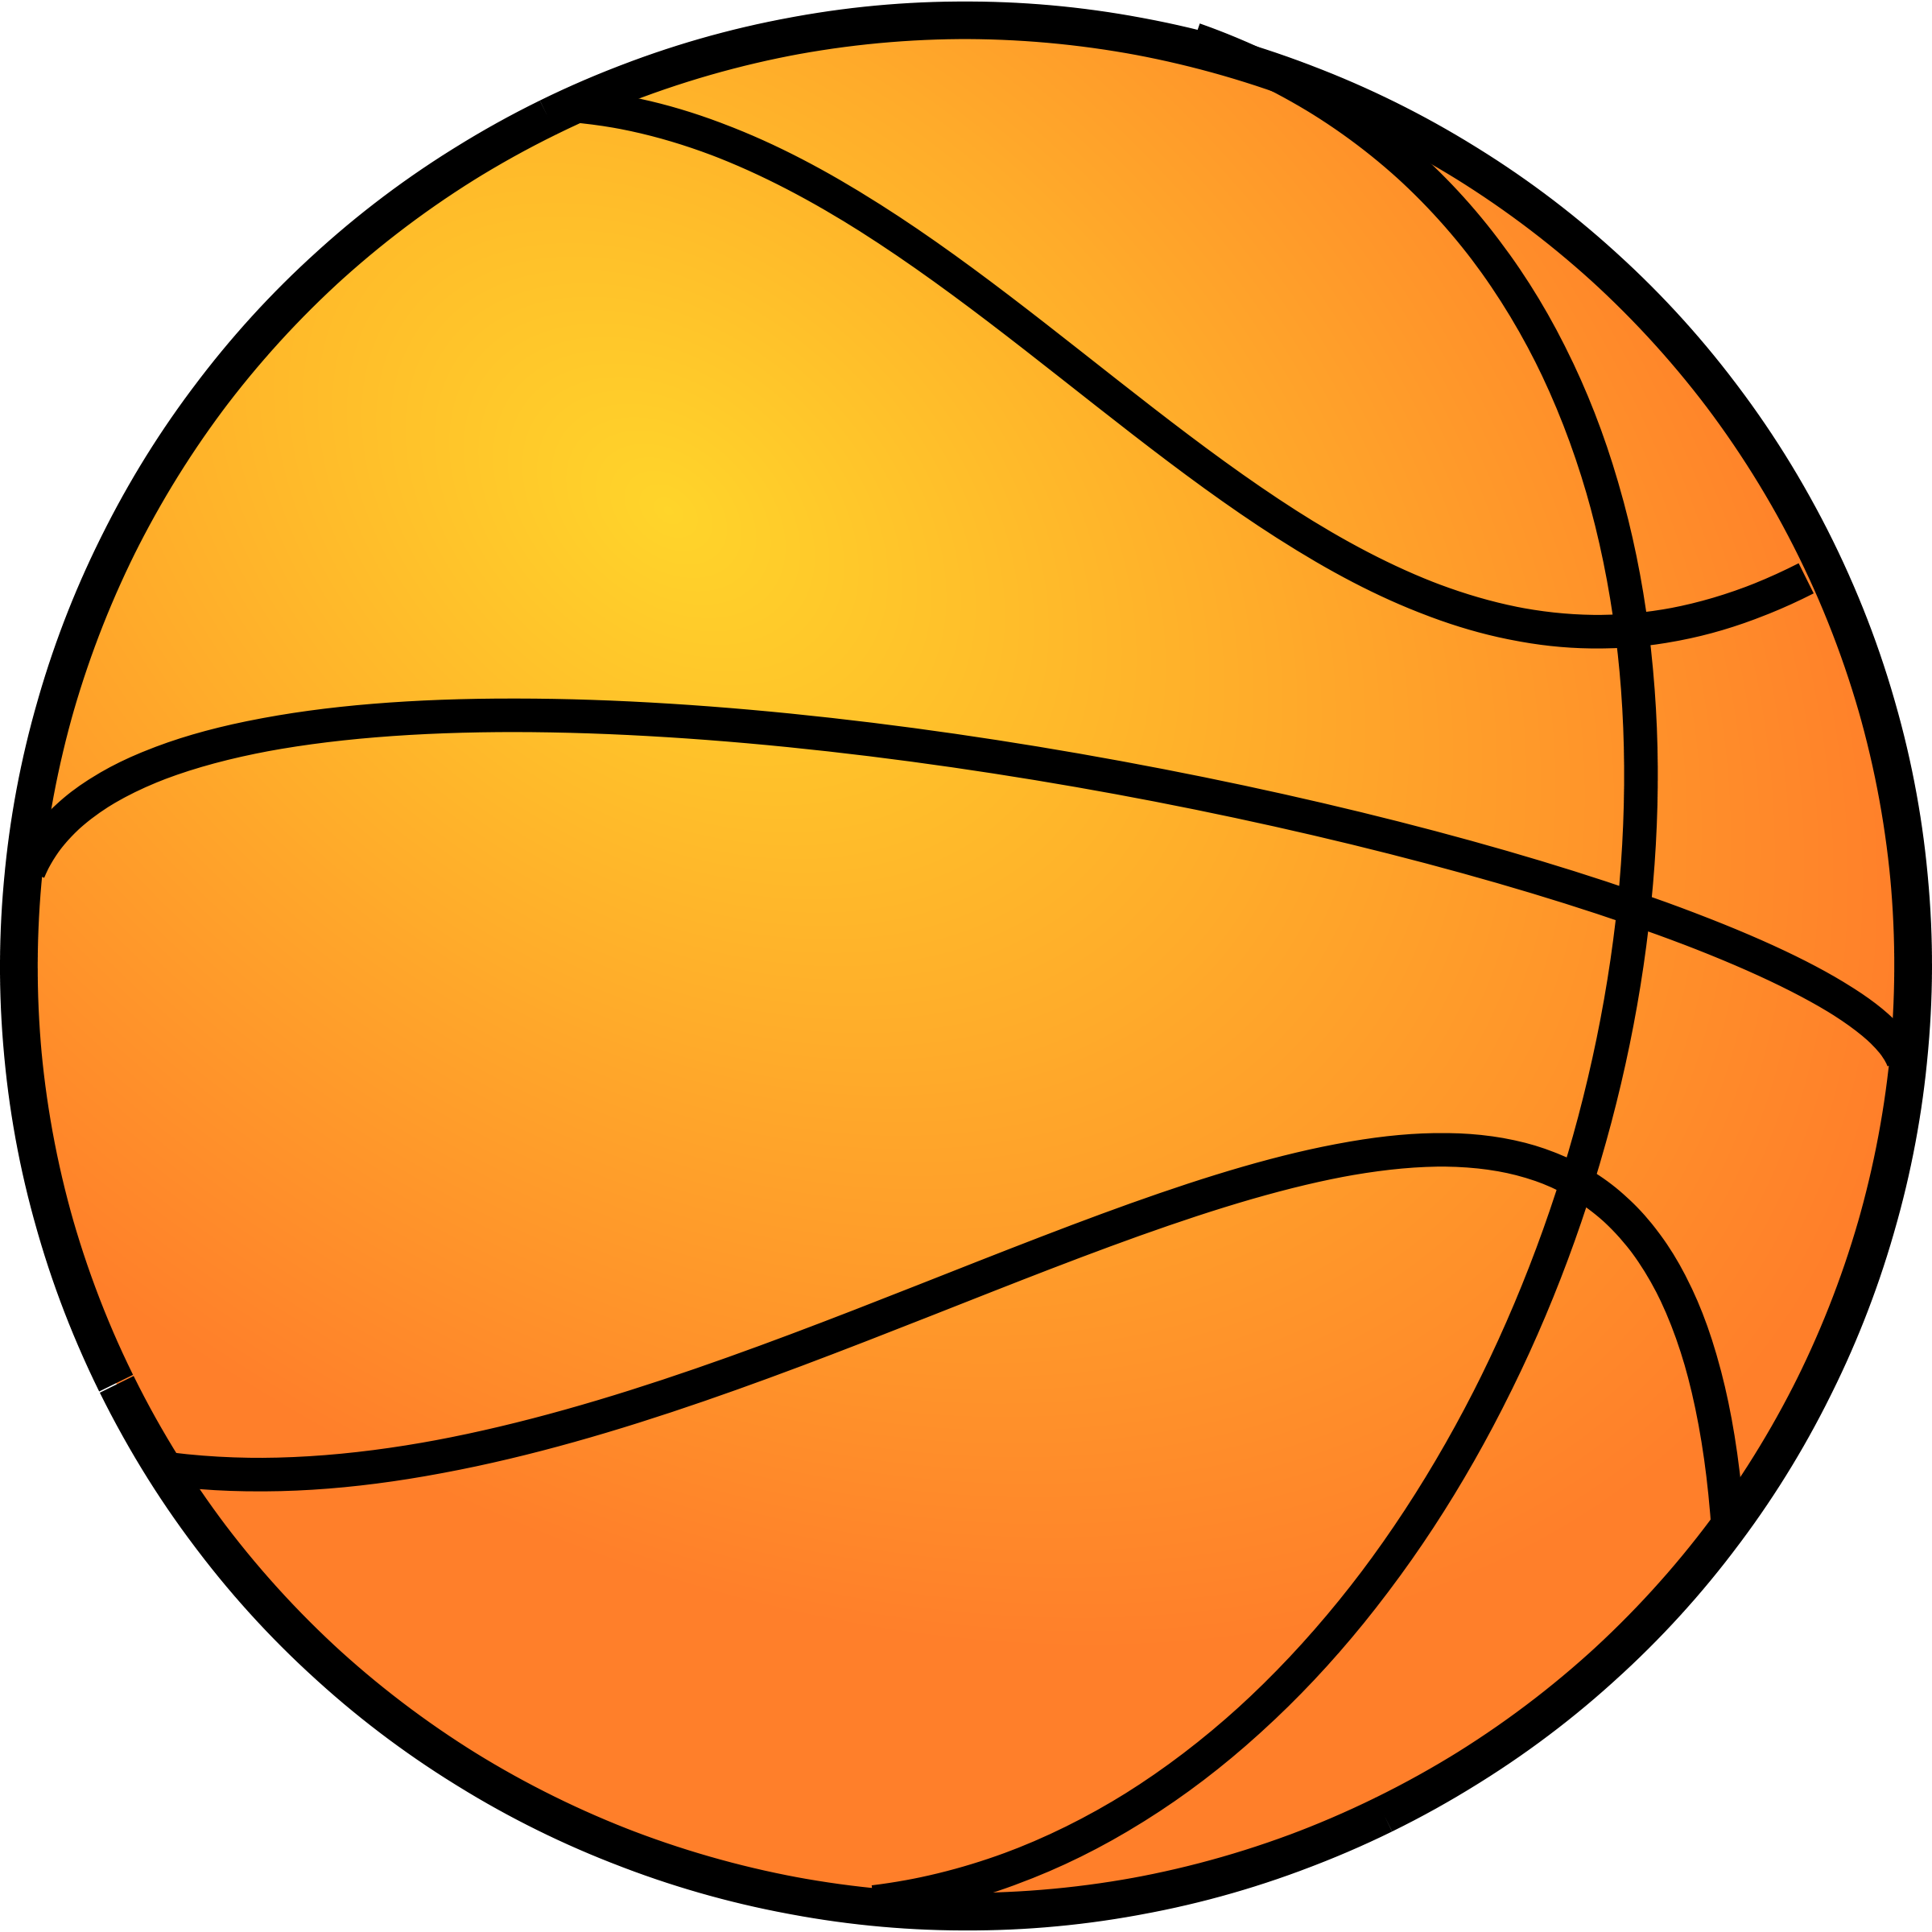 Basketball clipart free clipart image 2.